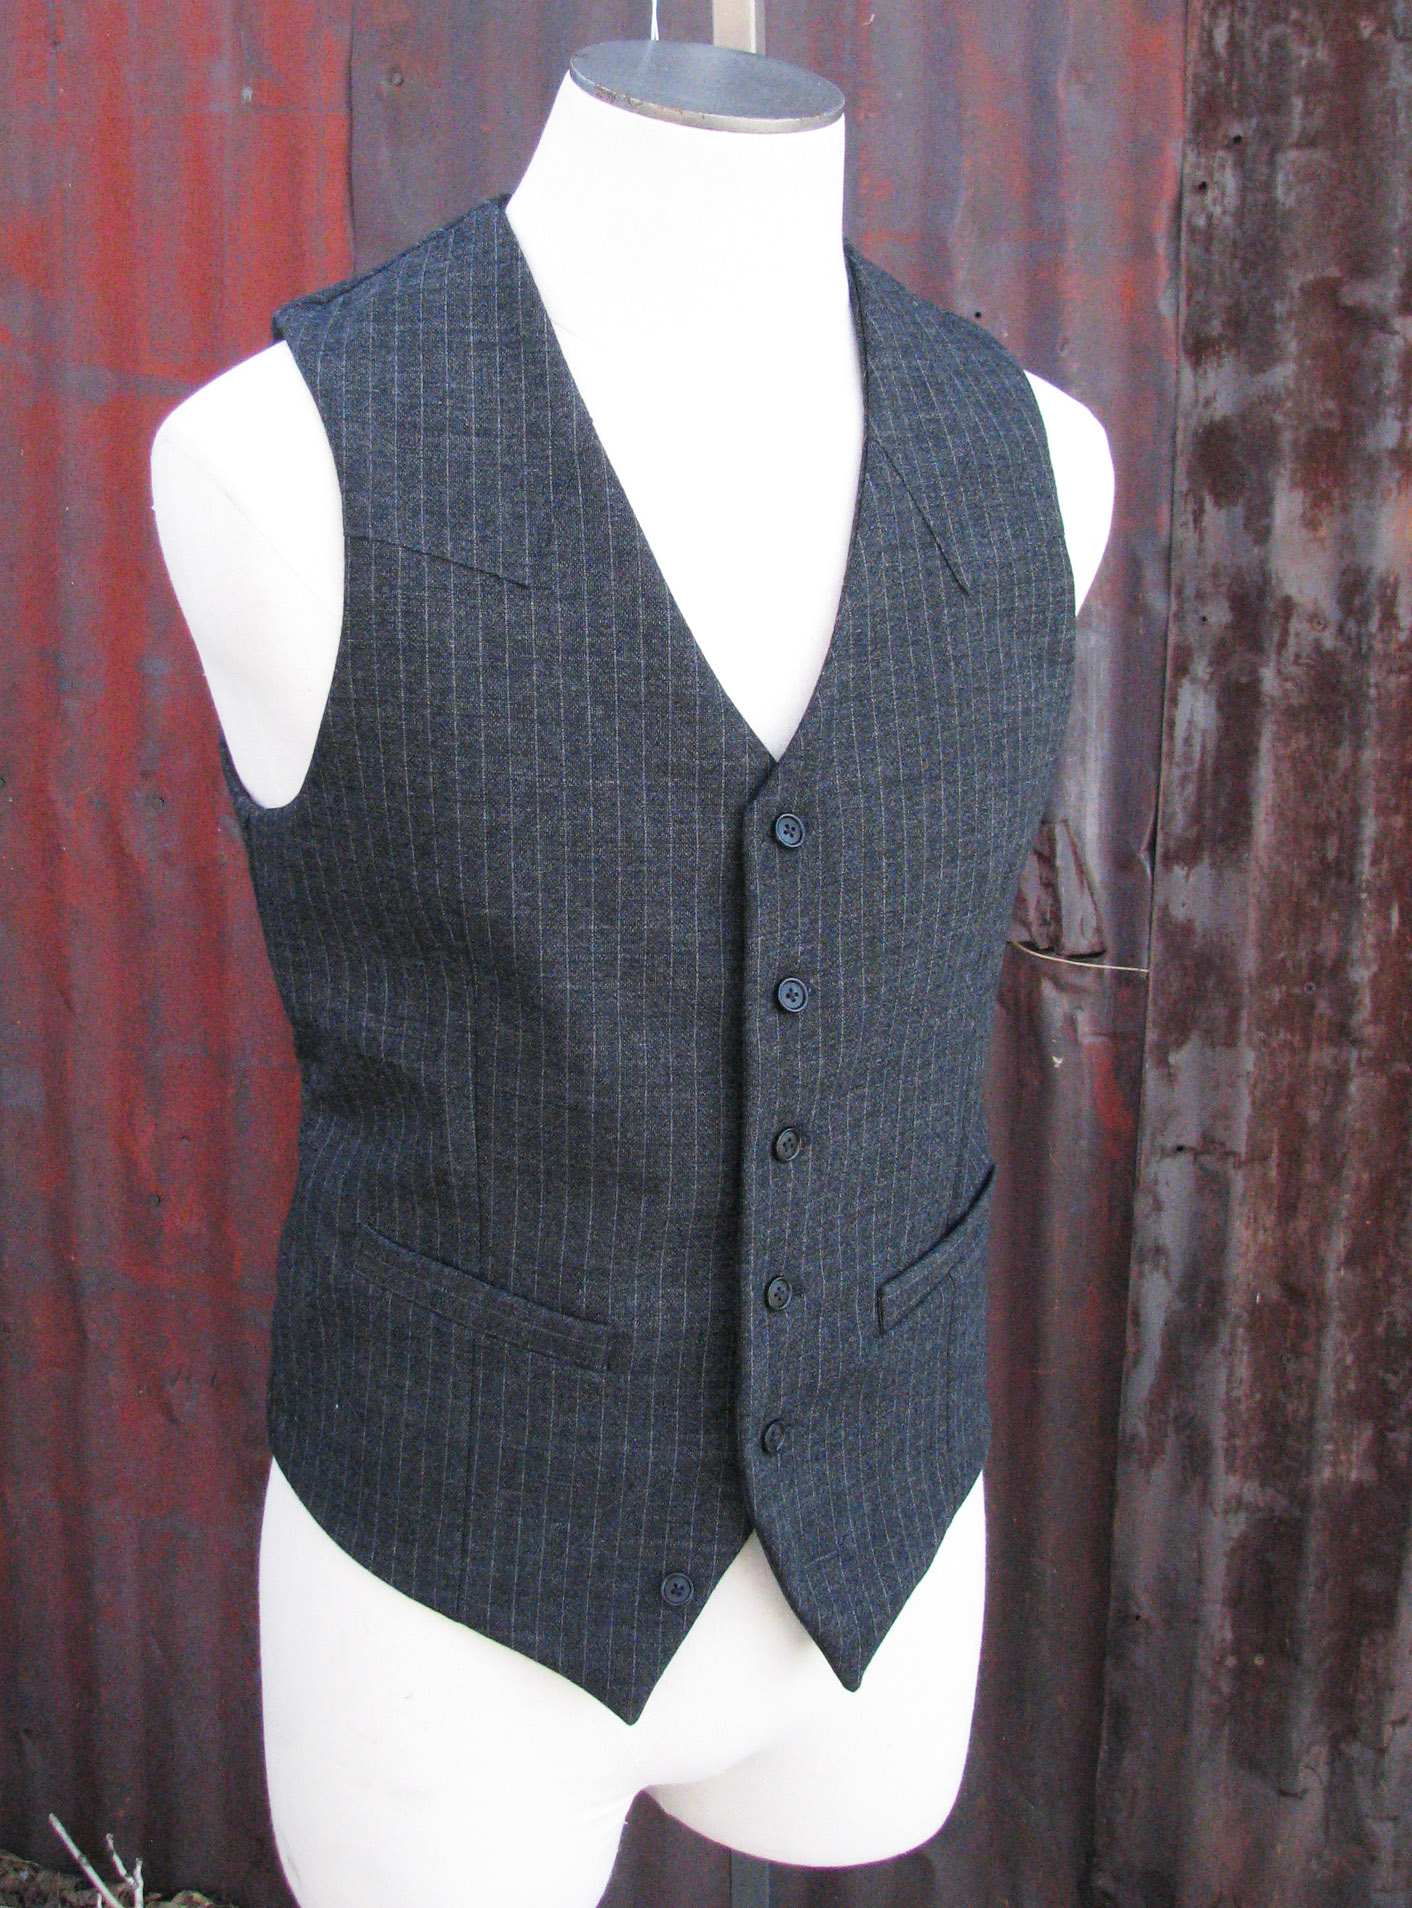 Vest definition is - a sleeveless garment for the upper body usually worn over a shirt. How to use vest in a sentence. a sleeveless garment for the upper body usually worn over a shirt.